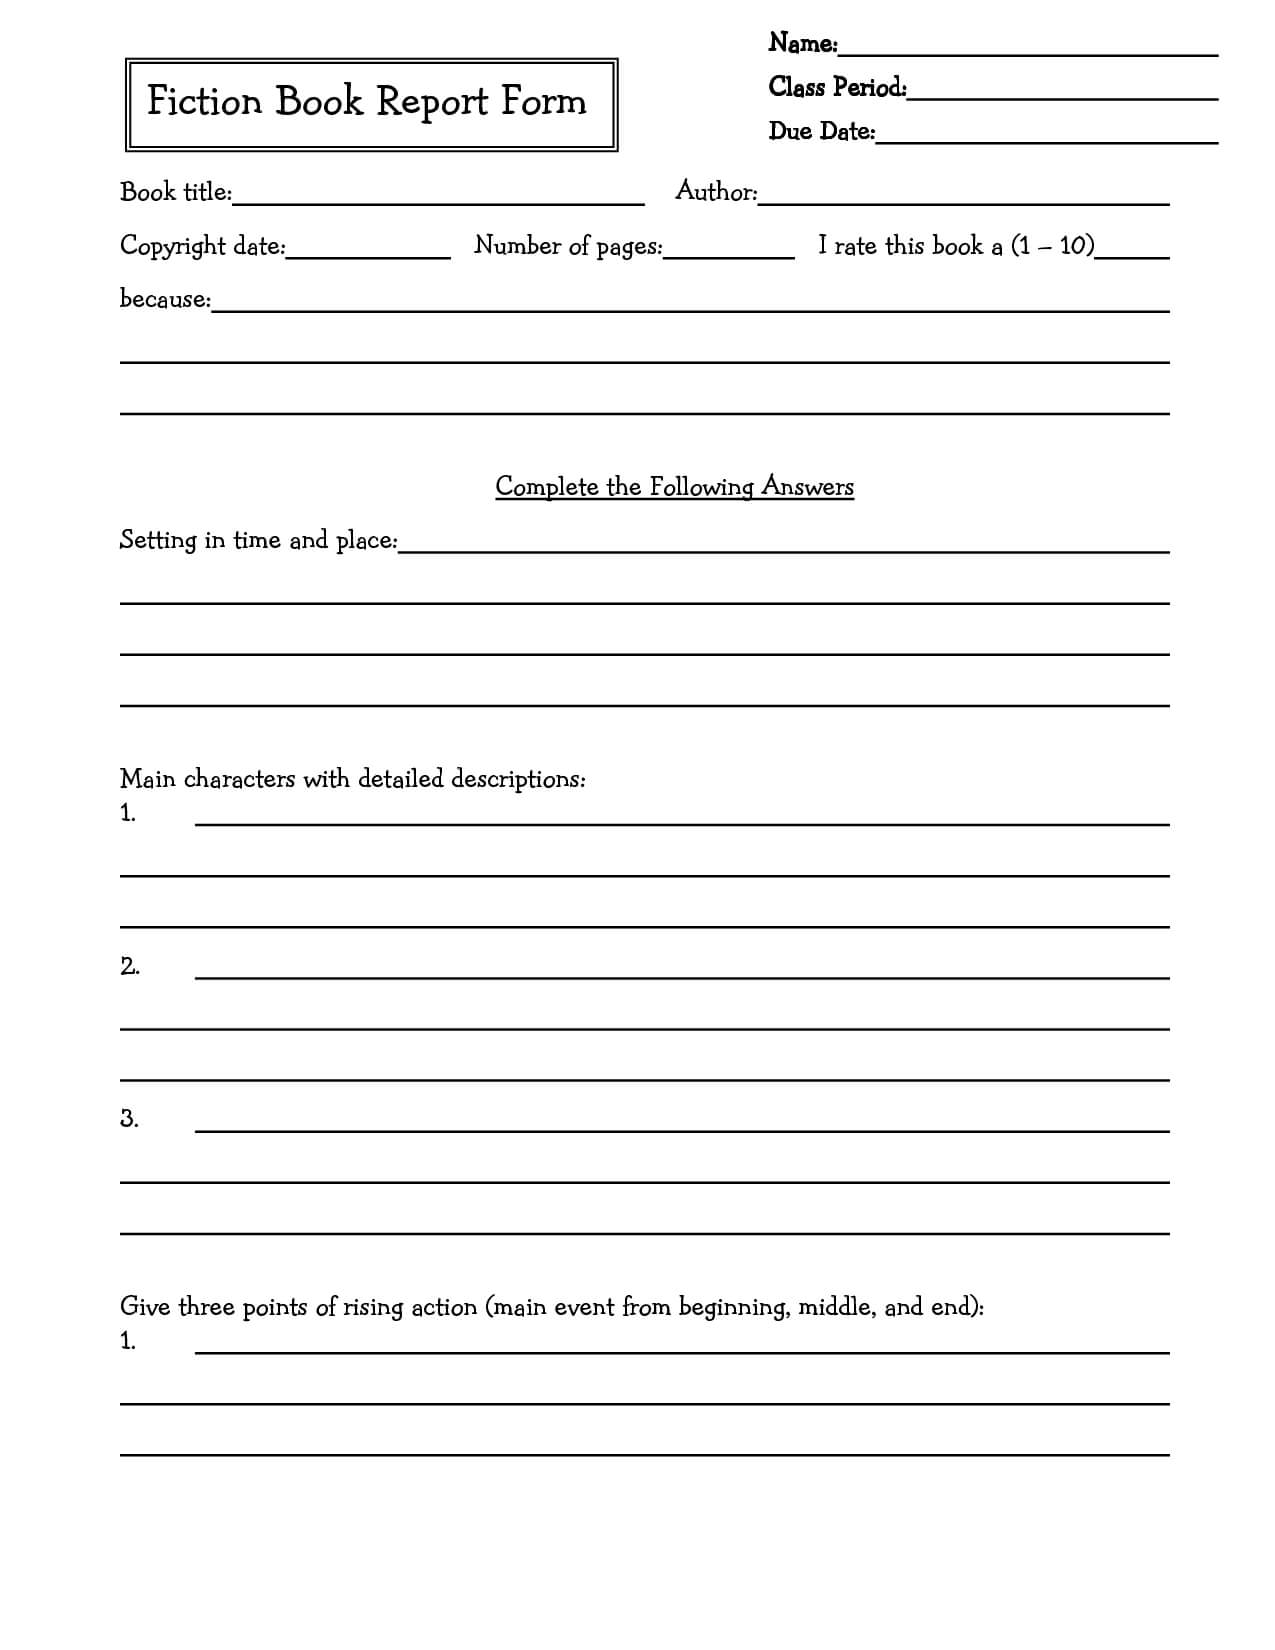 Middle School Book Report Brochure. 6Th Grade | 7Th Grade For Book Report Template 6Th Grade